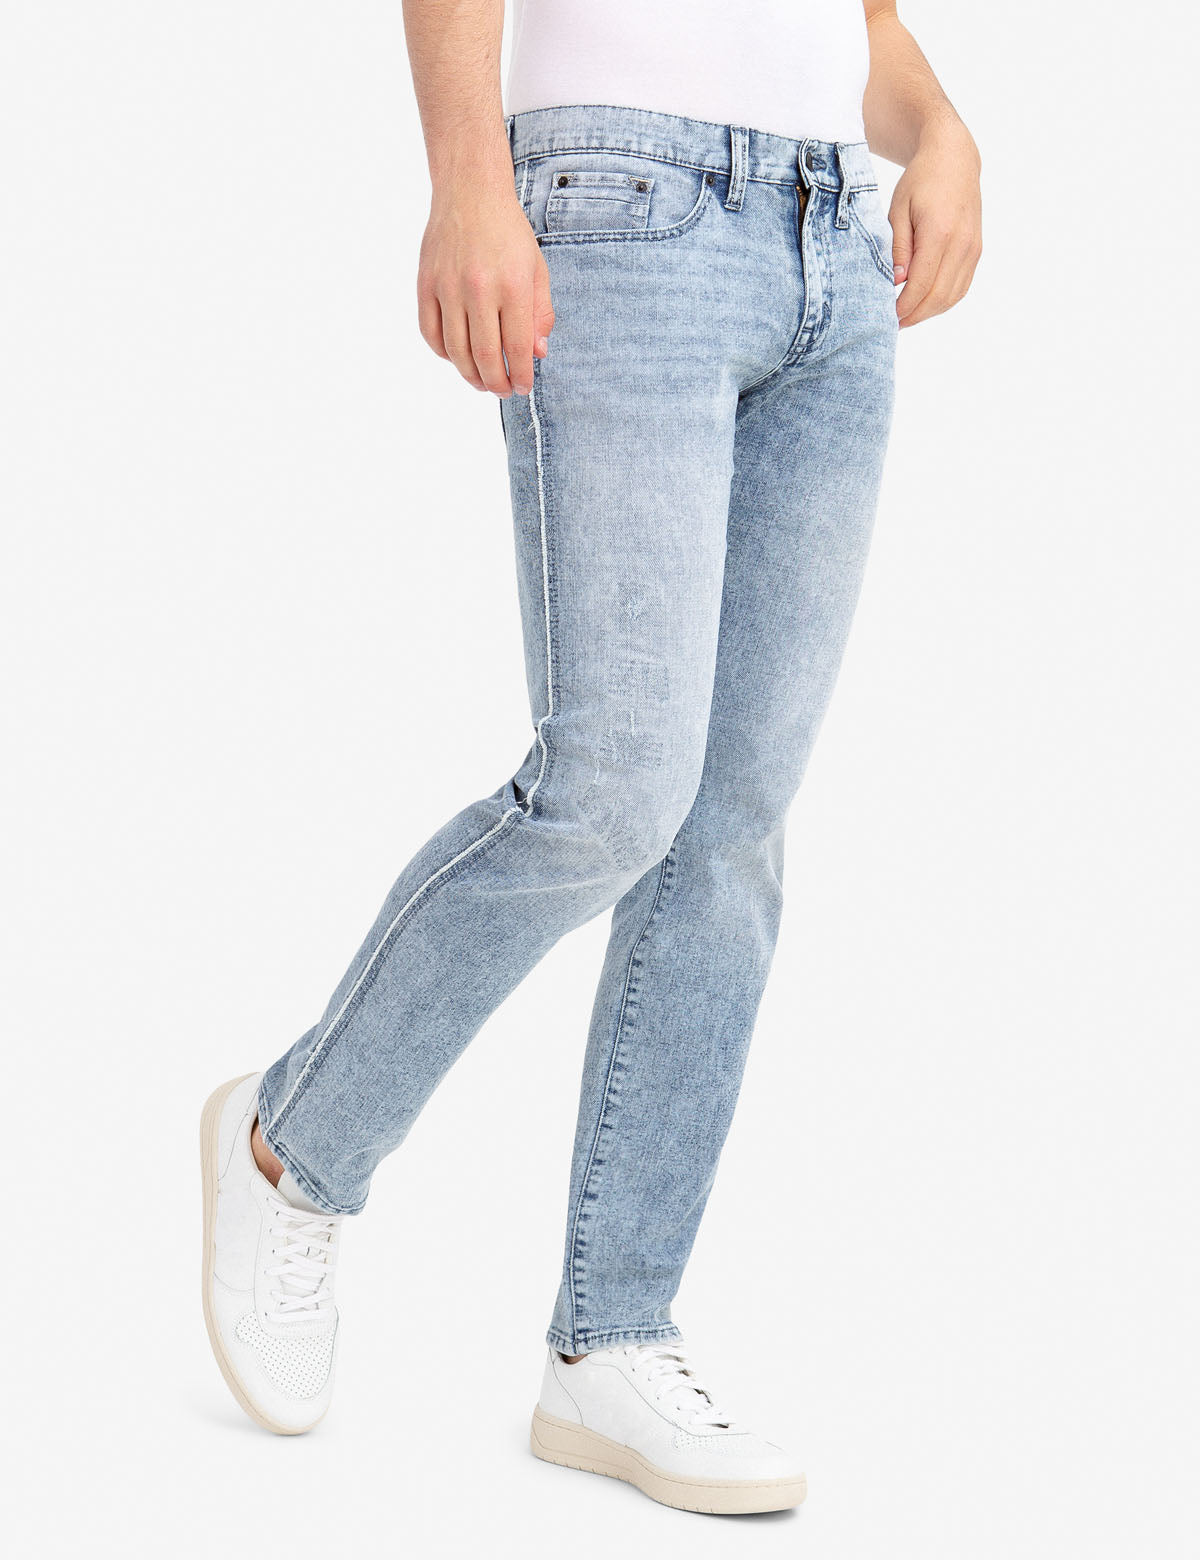 REPREVE® SLIM STRETCH RAW EDGE JEANS